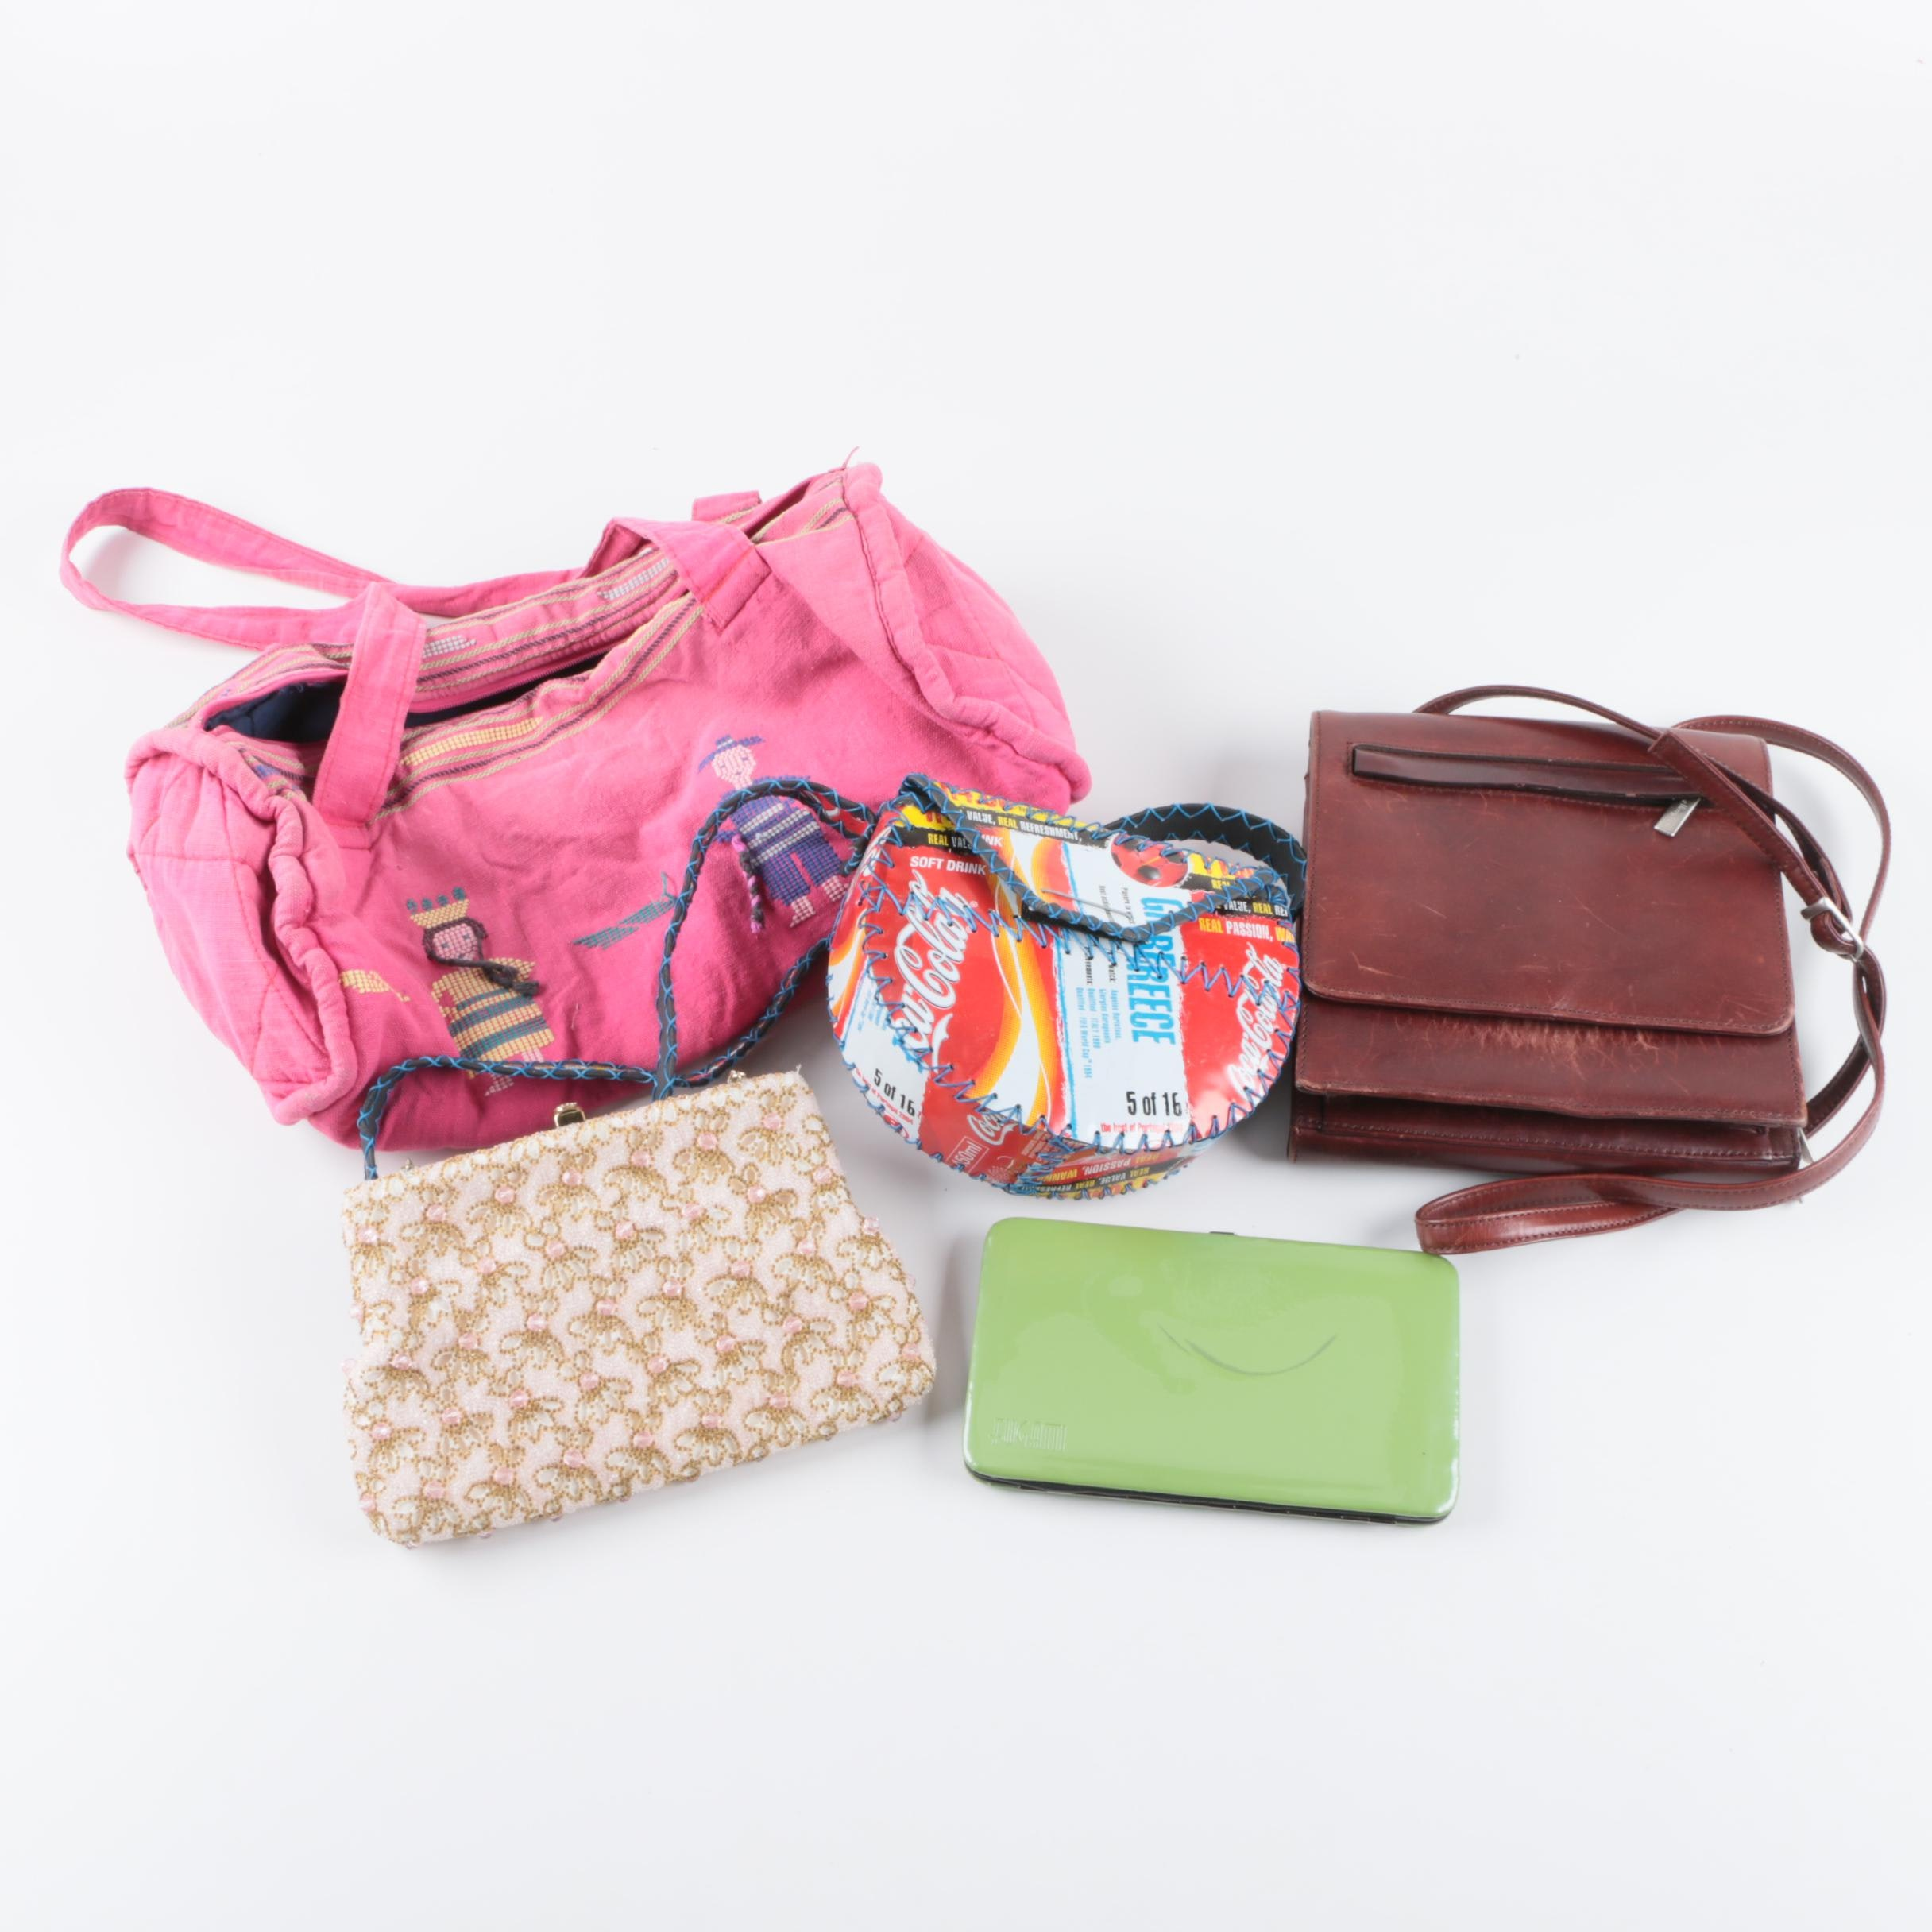 Handbag and Clutch Variety